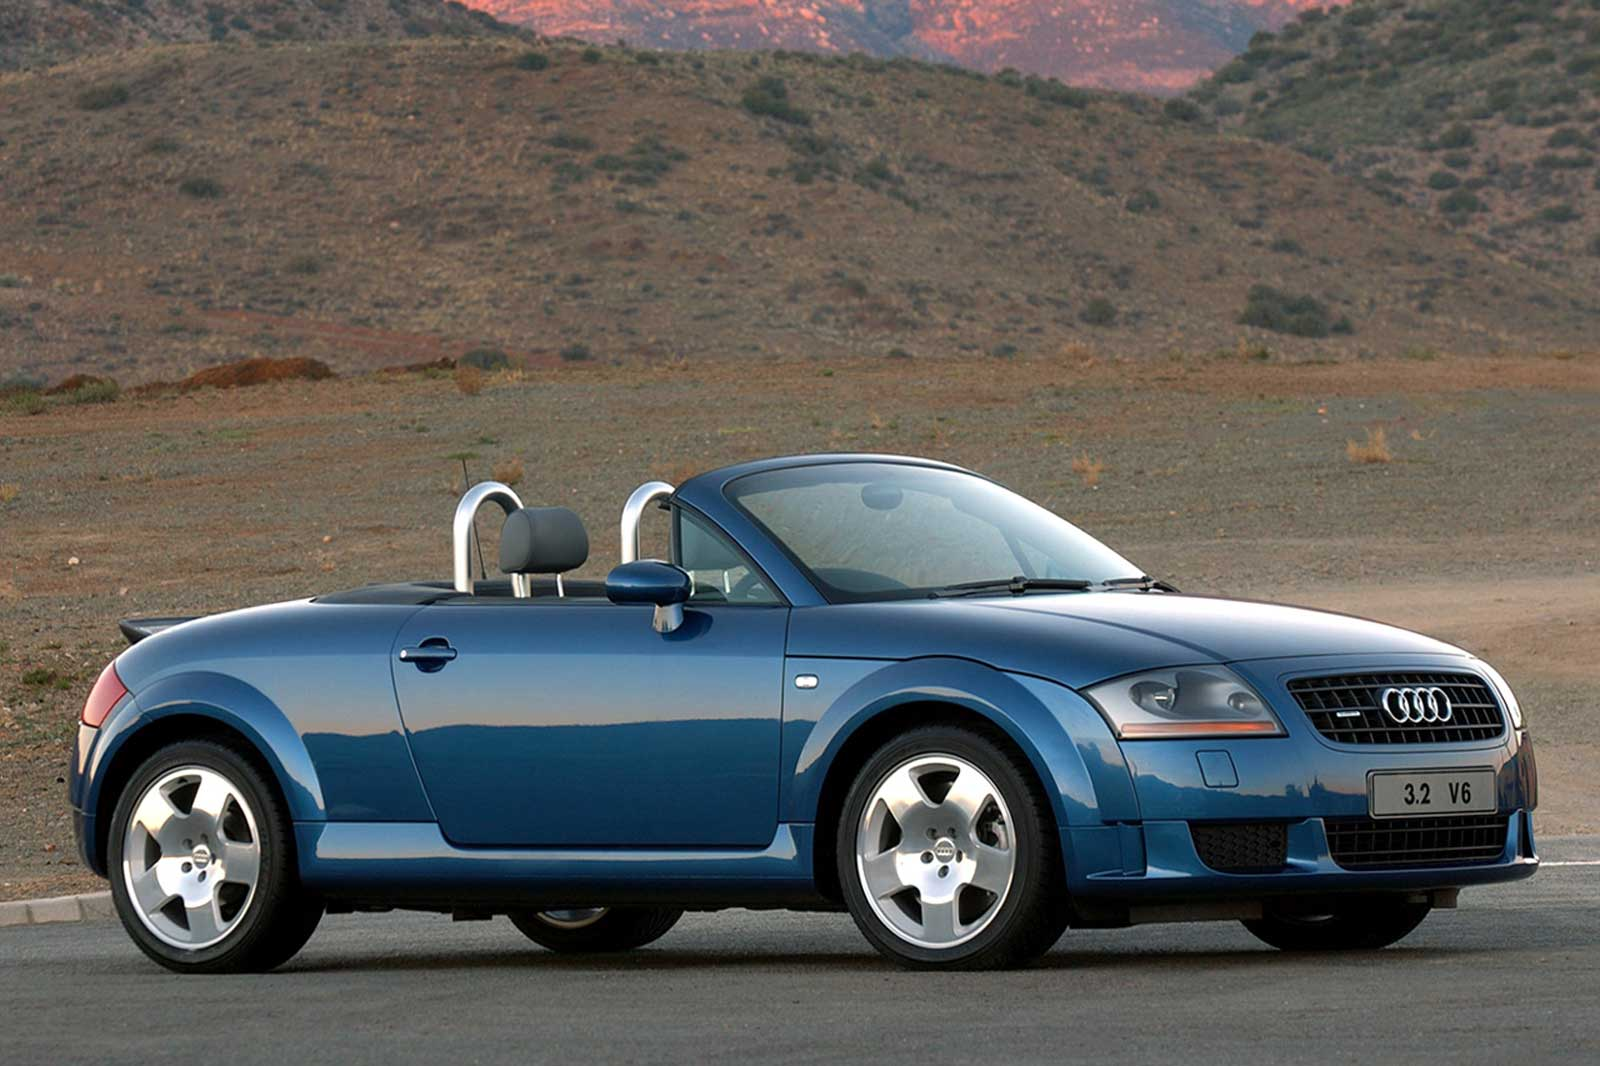 Future classics: ten affordable used convertible cars set to rise in ...